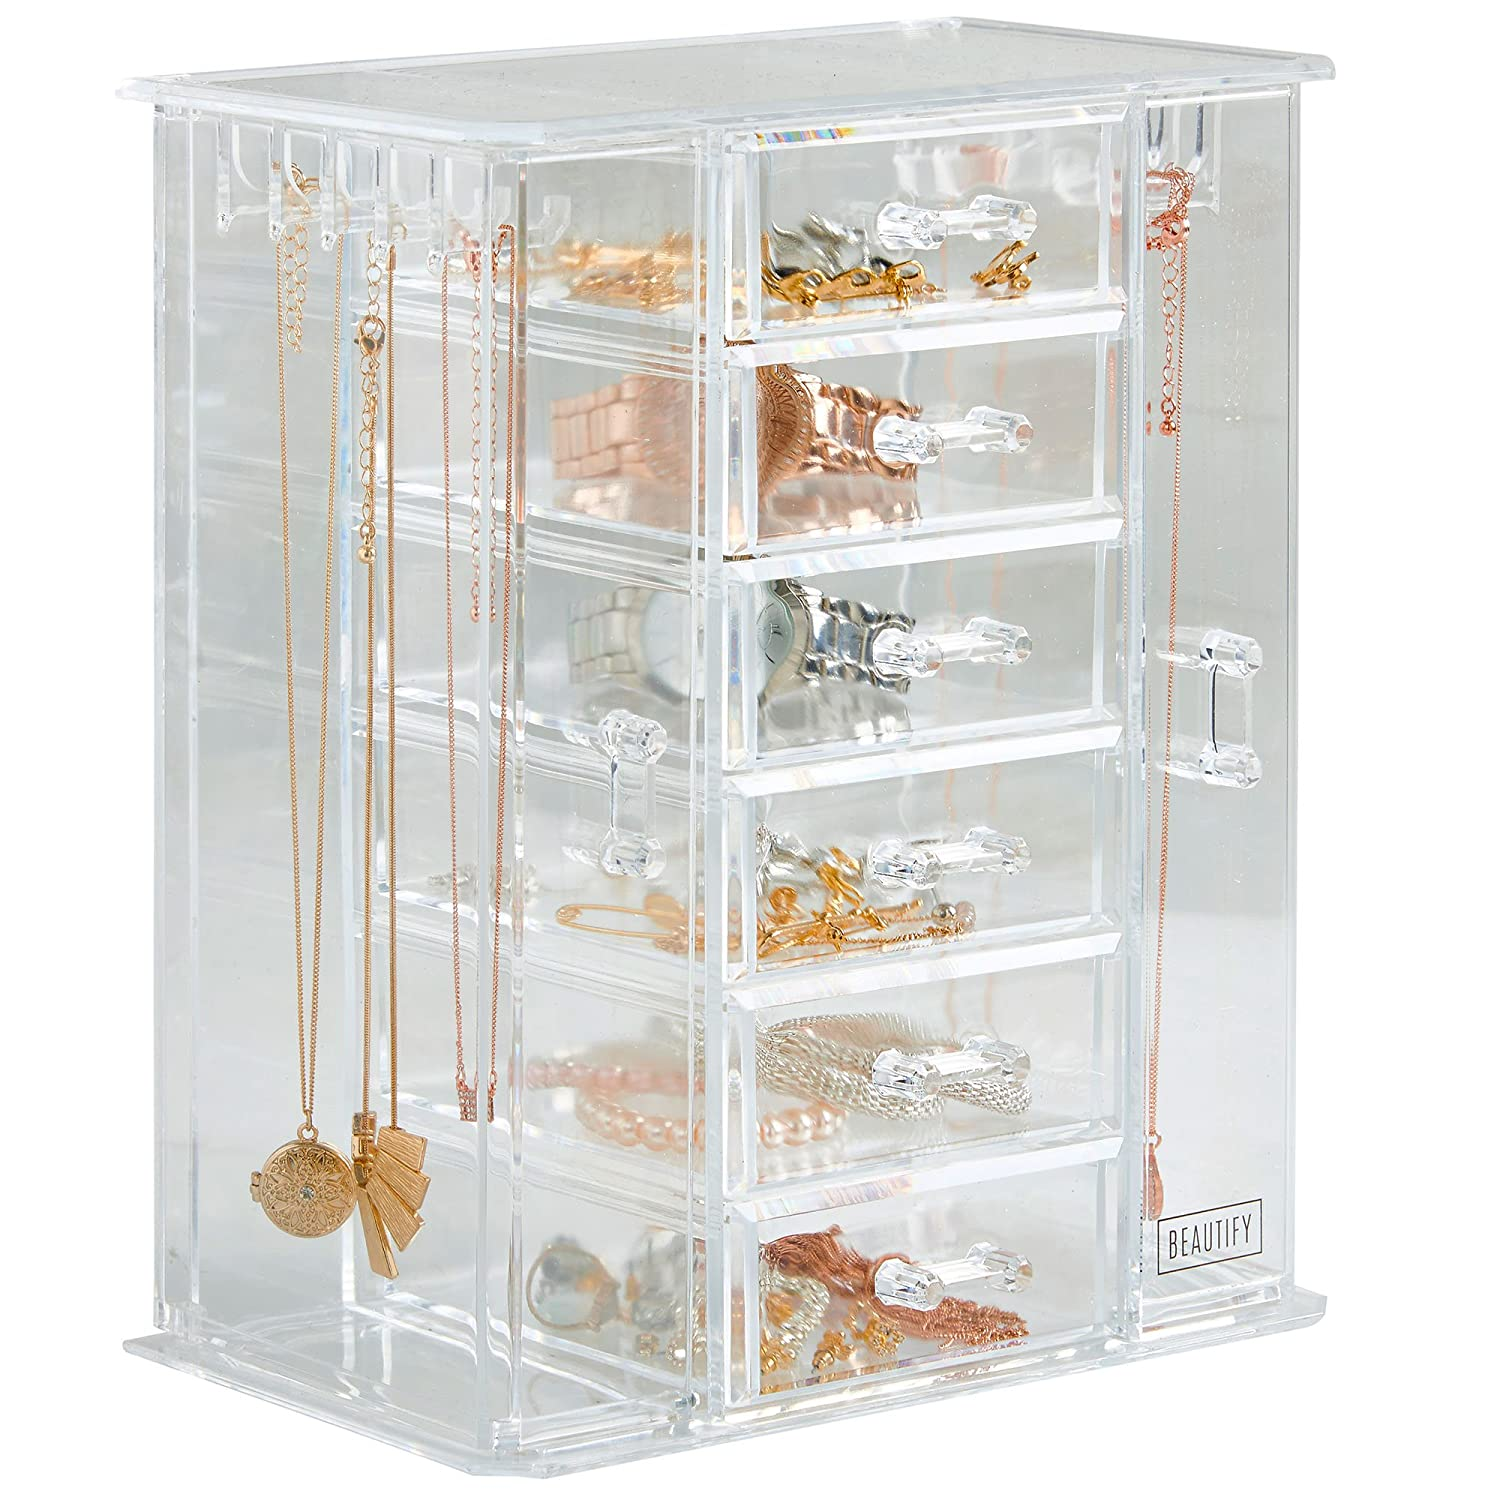 Beautify Acrylic Jewellery Storage Box with 6 Drawers - Jewellery Box & Organiser - Clear Transparent 10/077